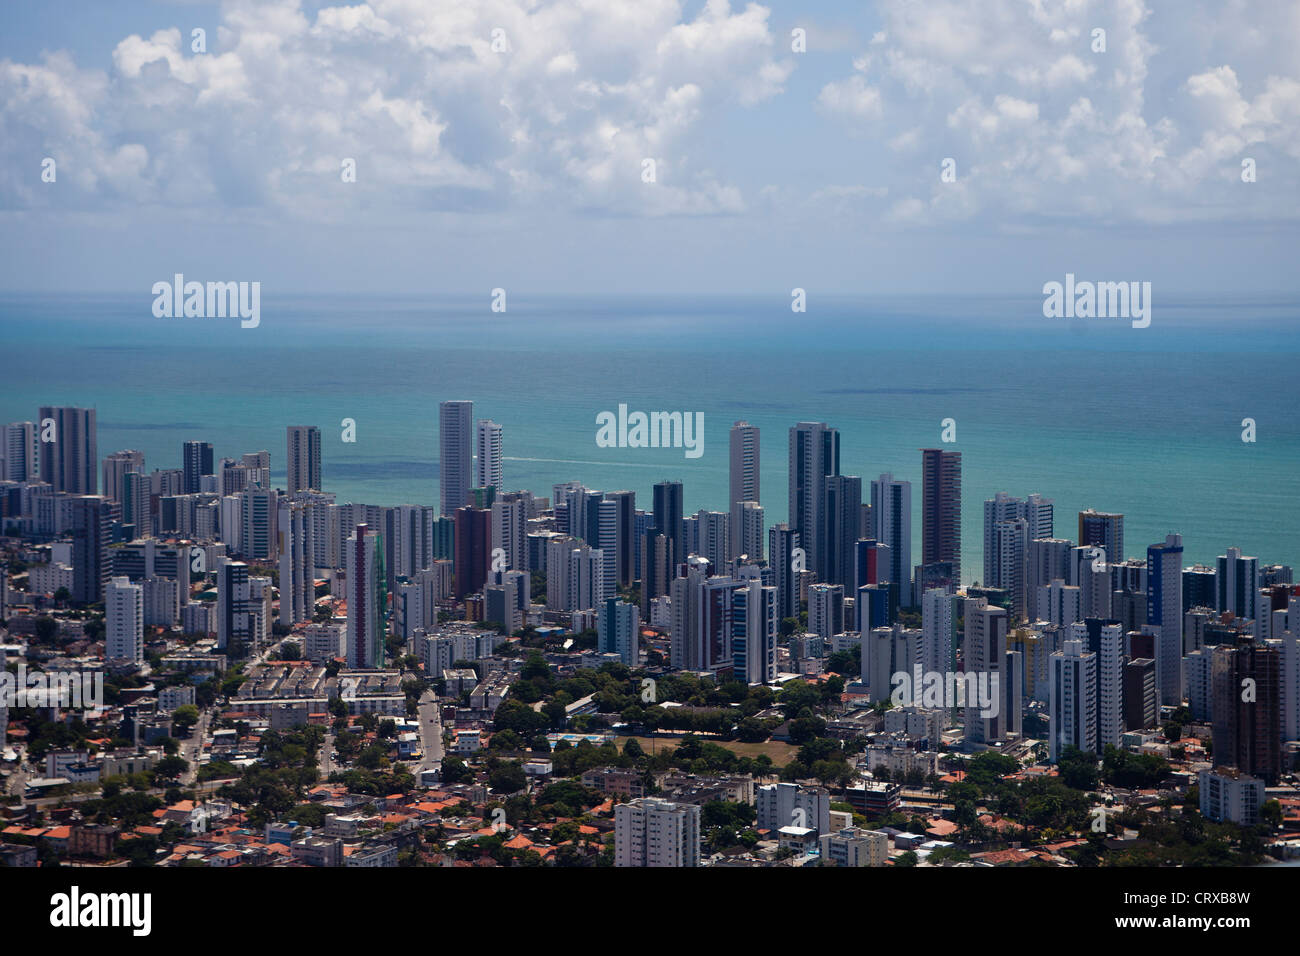 Boa Viagem neighborhood and beach in Recife city, Pernambuco State, Brazil - Stock Image